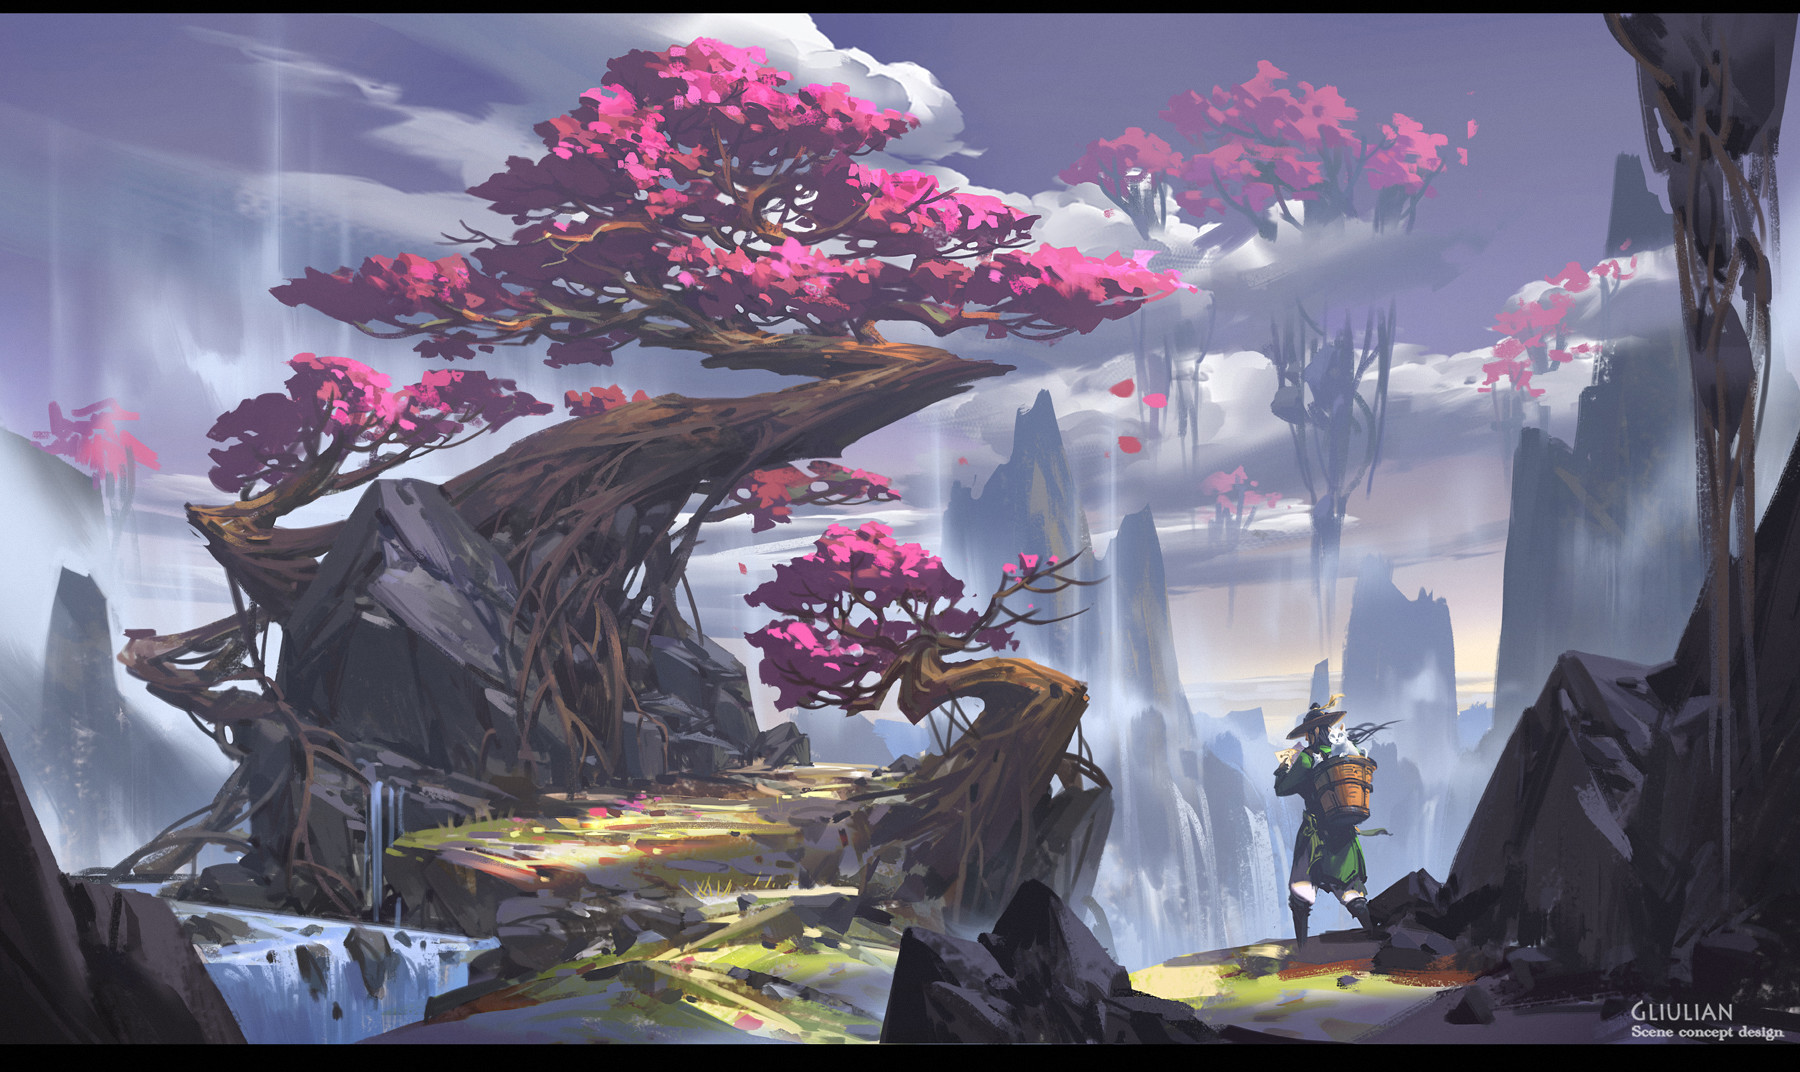 G Liulian digital painting concept art pink tree floated island